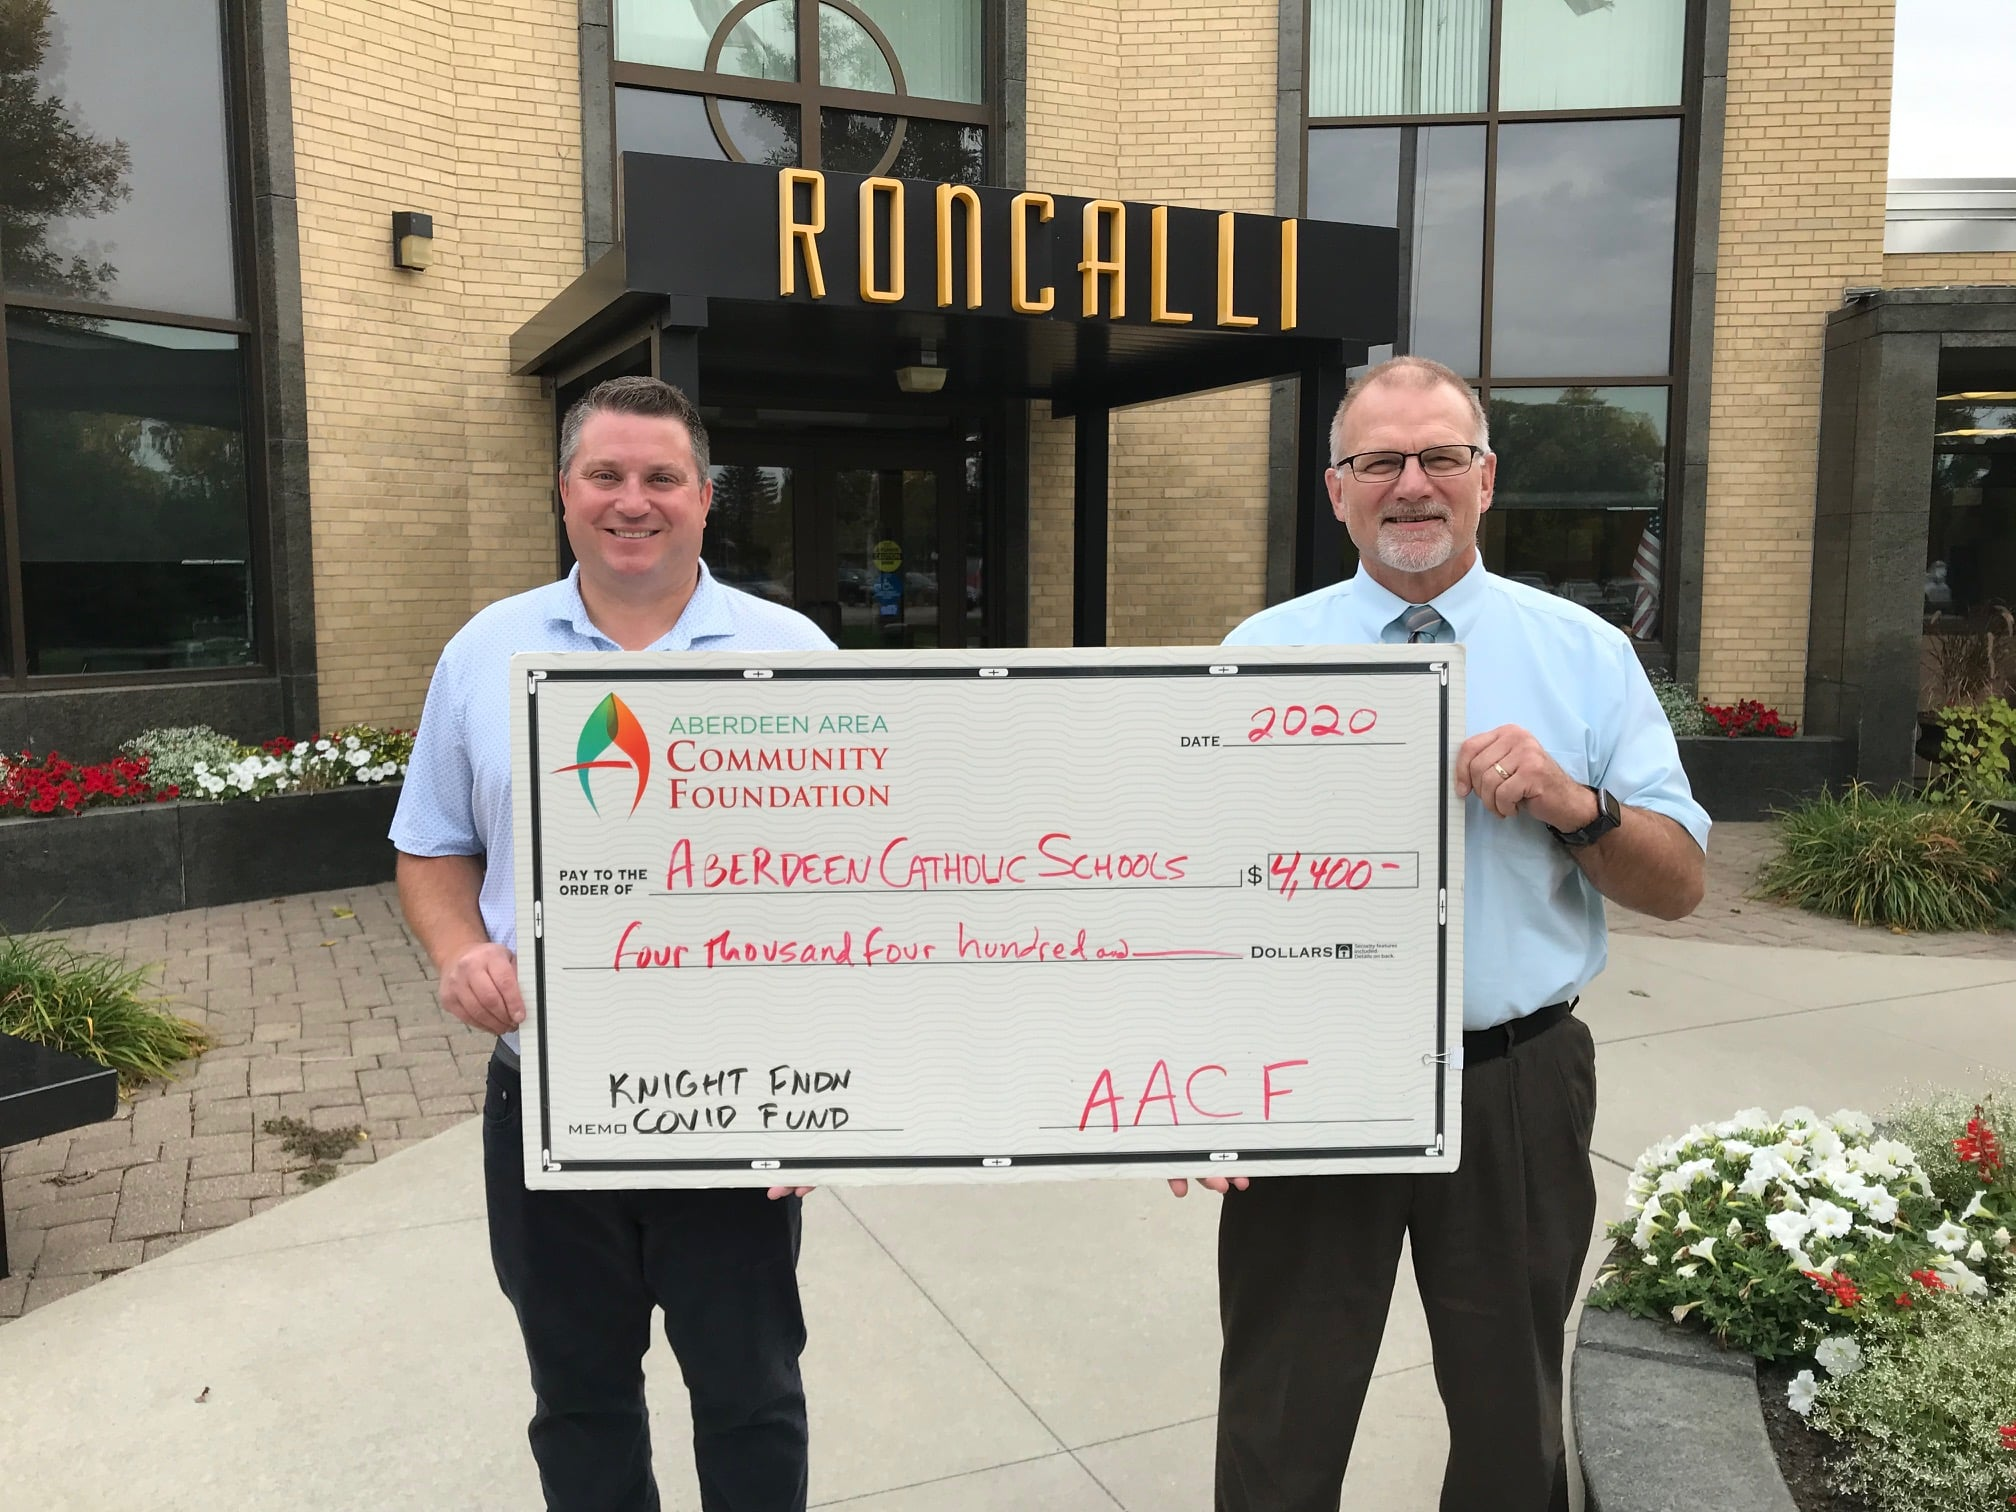 Aberdeen Area Community Foundation Provides Fountains